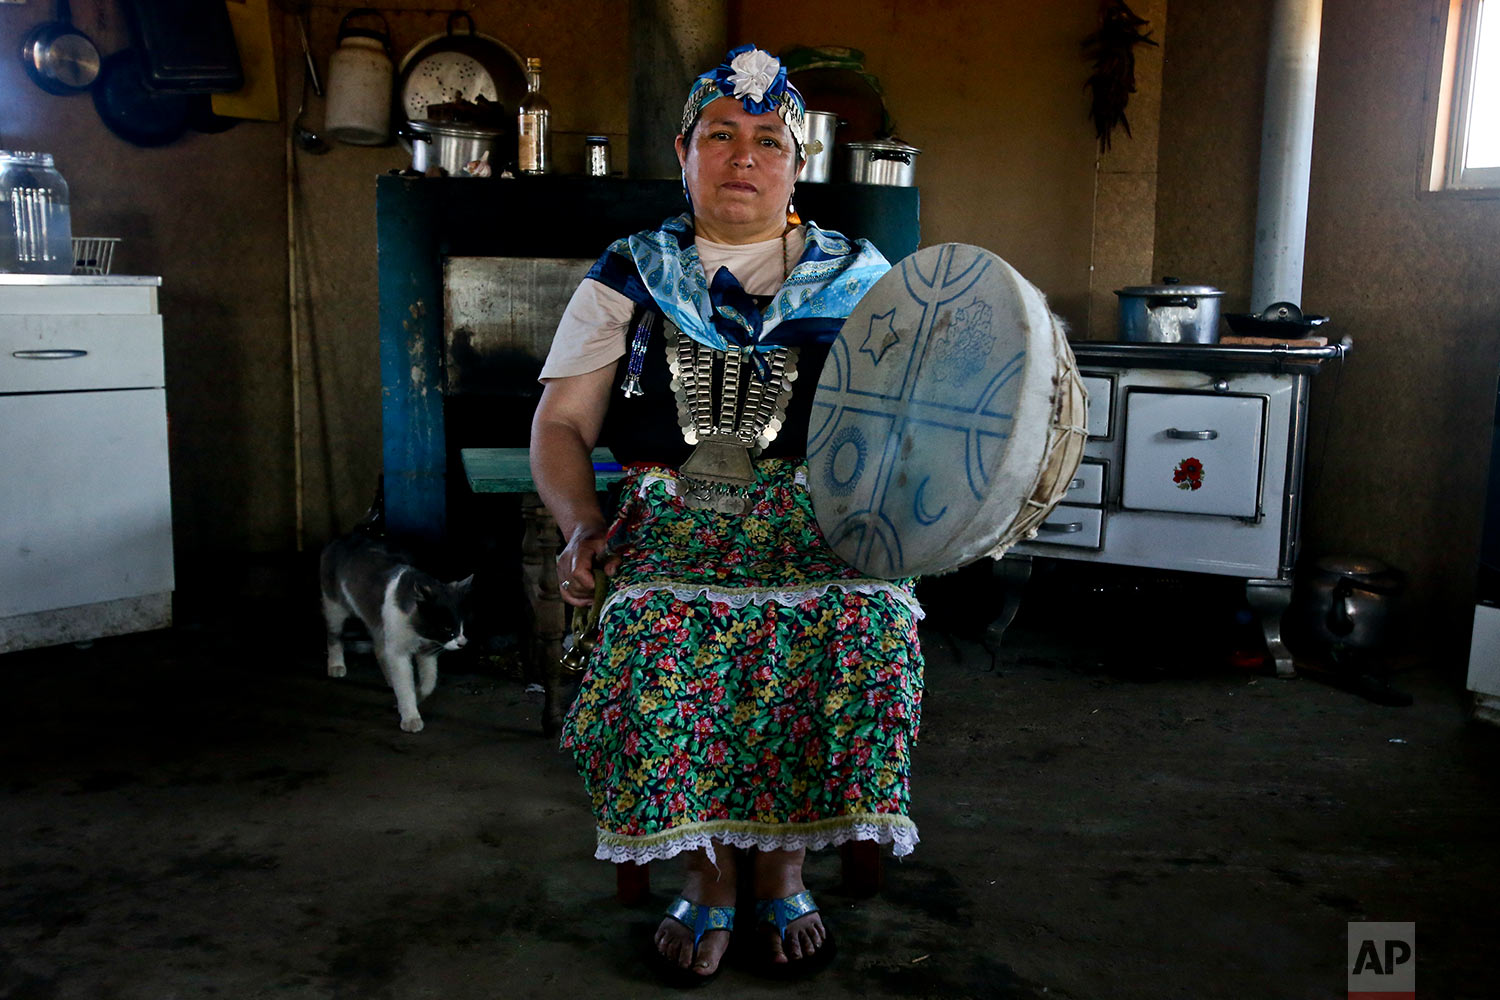 """In this Jan. 8, 2018 photo, Kallfurayen Llanquileo, a Mapuche healer and religious leader known as a """"Machi,"""" poses for a photo with her shaman drum at her home in the Mapuche community Enoco in Temuco, Chile.(AP Photo/Esteban Felix)